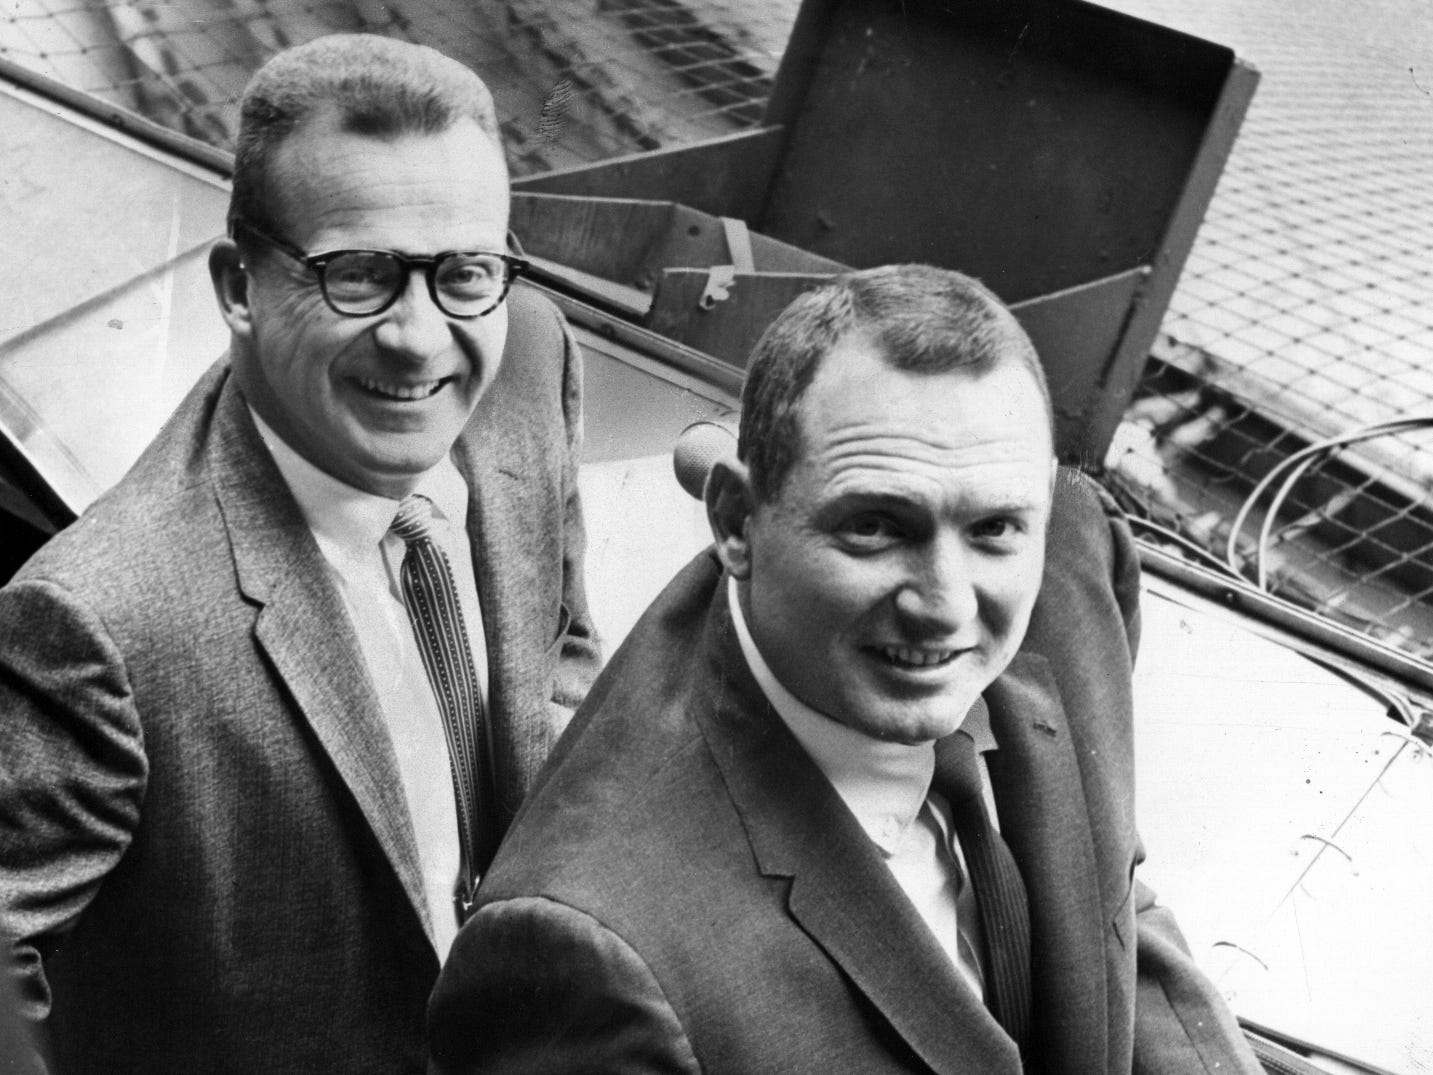 Former Tigers player George Kell, right, joined the booth in 1959, working alongside van Patrick. Kell then recommended the Tigers hire a broadcaster named Ernie Harwell, left. The two worked together from 1959-63 calling Tigers TV on WJBK.